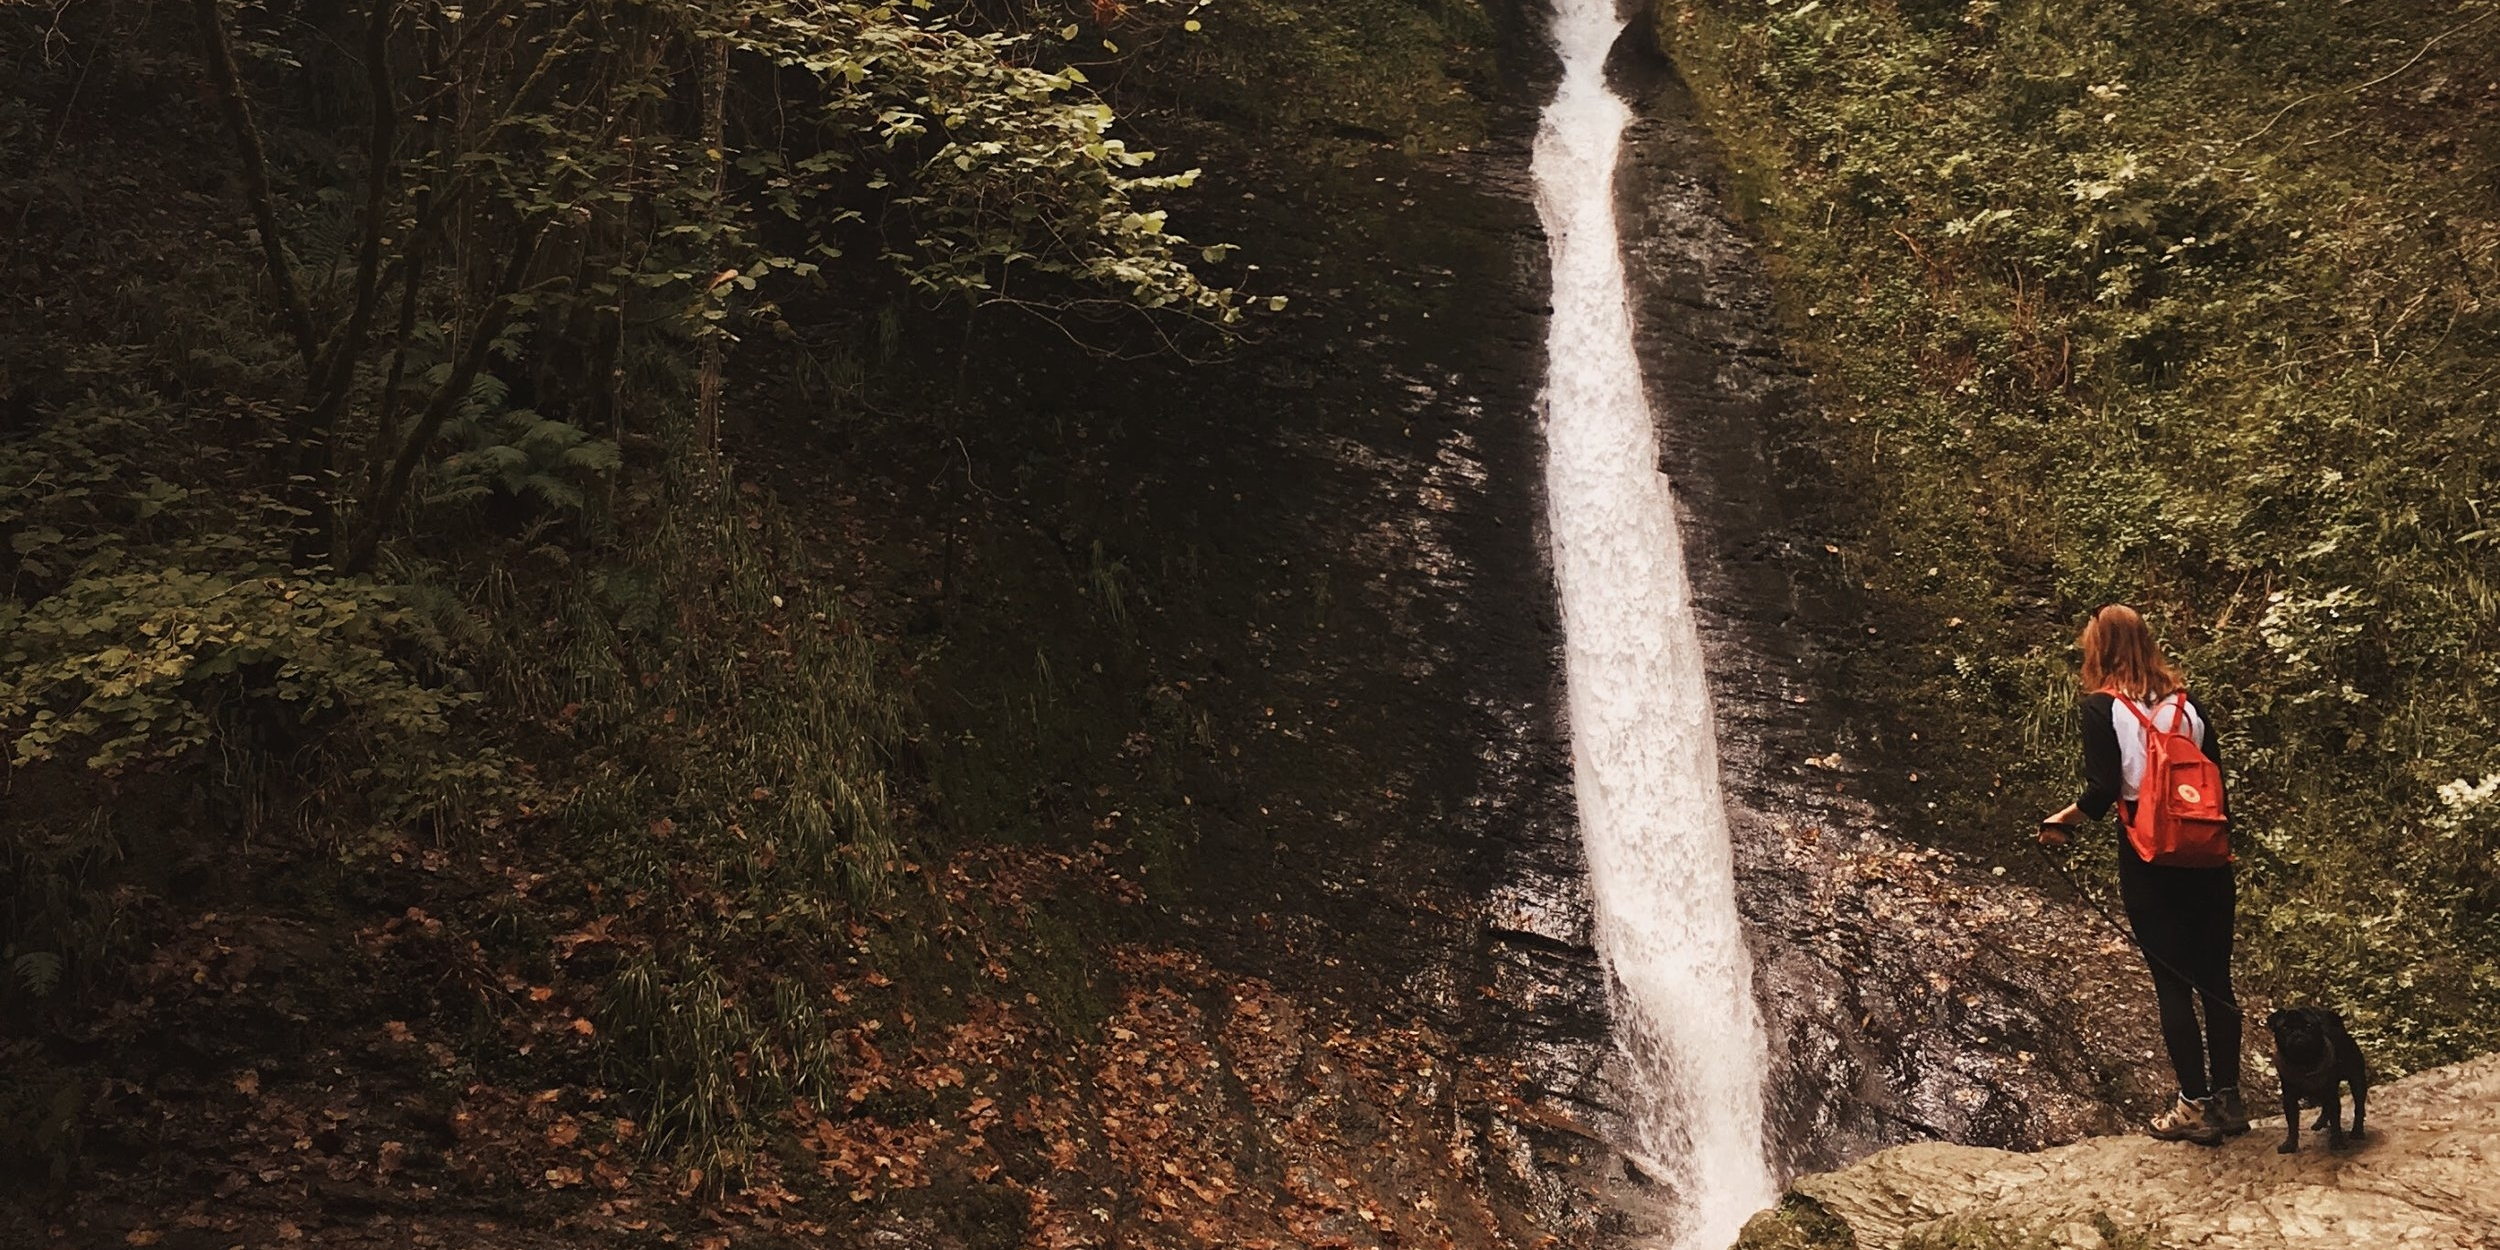 LYDFORD GORGE BY JOE EYNON  In 2017 Joe (of Bearded Outdoors) and Samantha road-tripped to Cornwall, stopping off at the magical Lydford Gorge in mid-Devon.     READ MORE